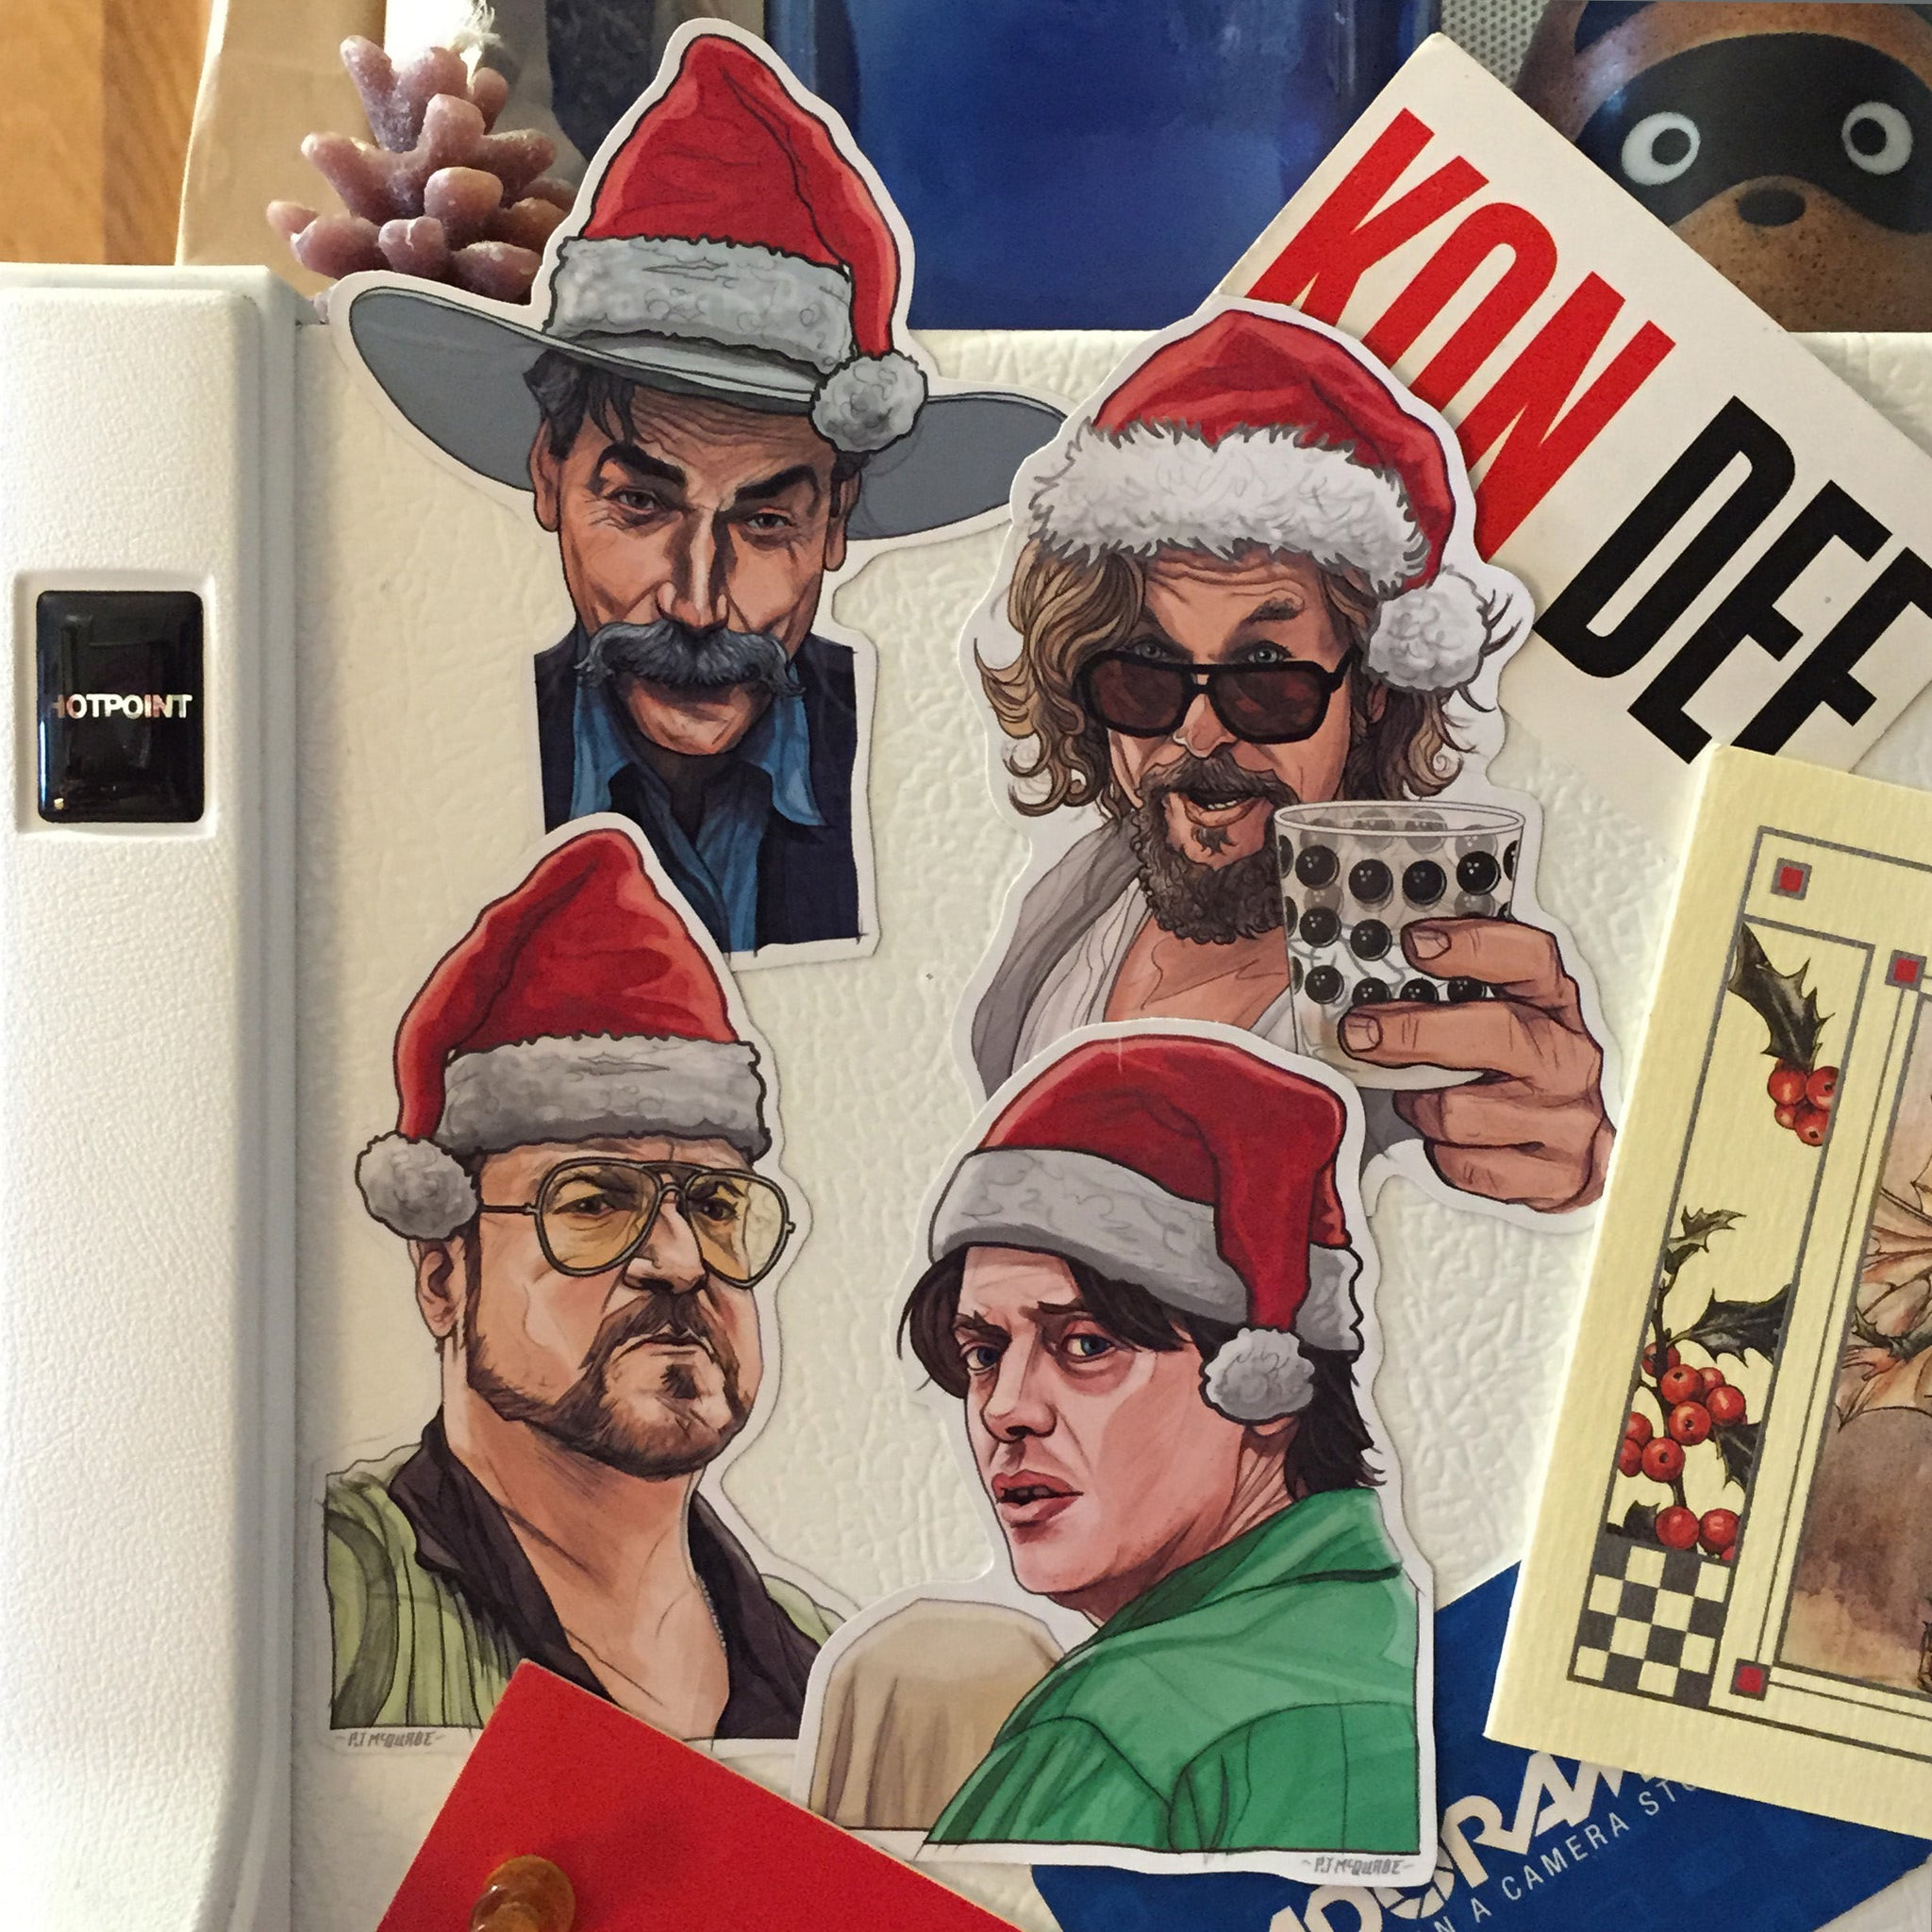 The BIG LEBOWSKI Christmas Fridge Magnet SET!